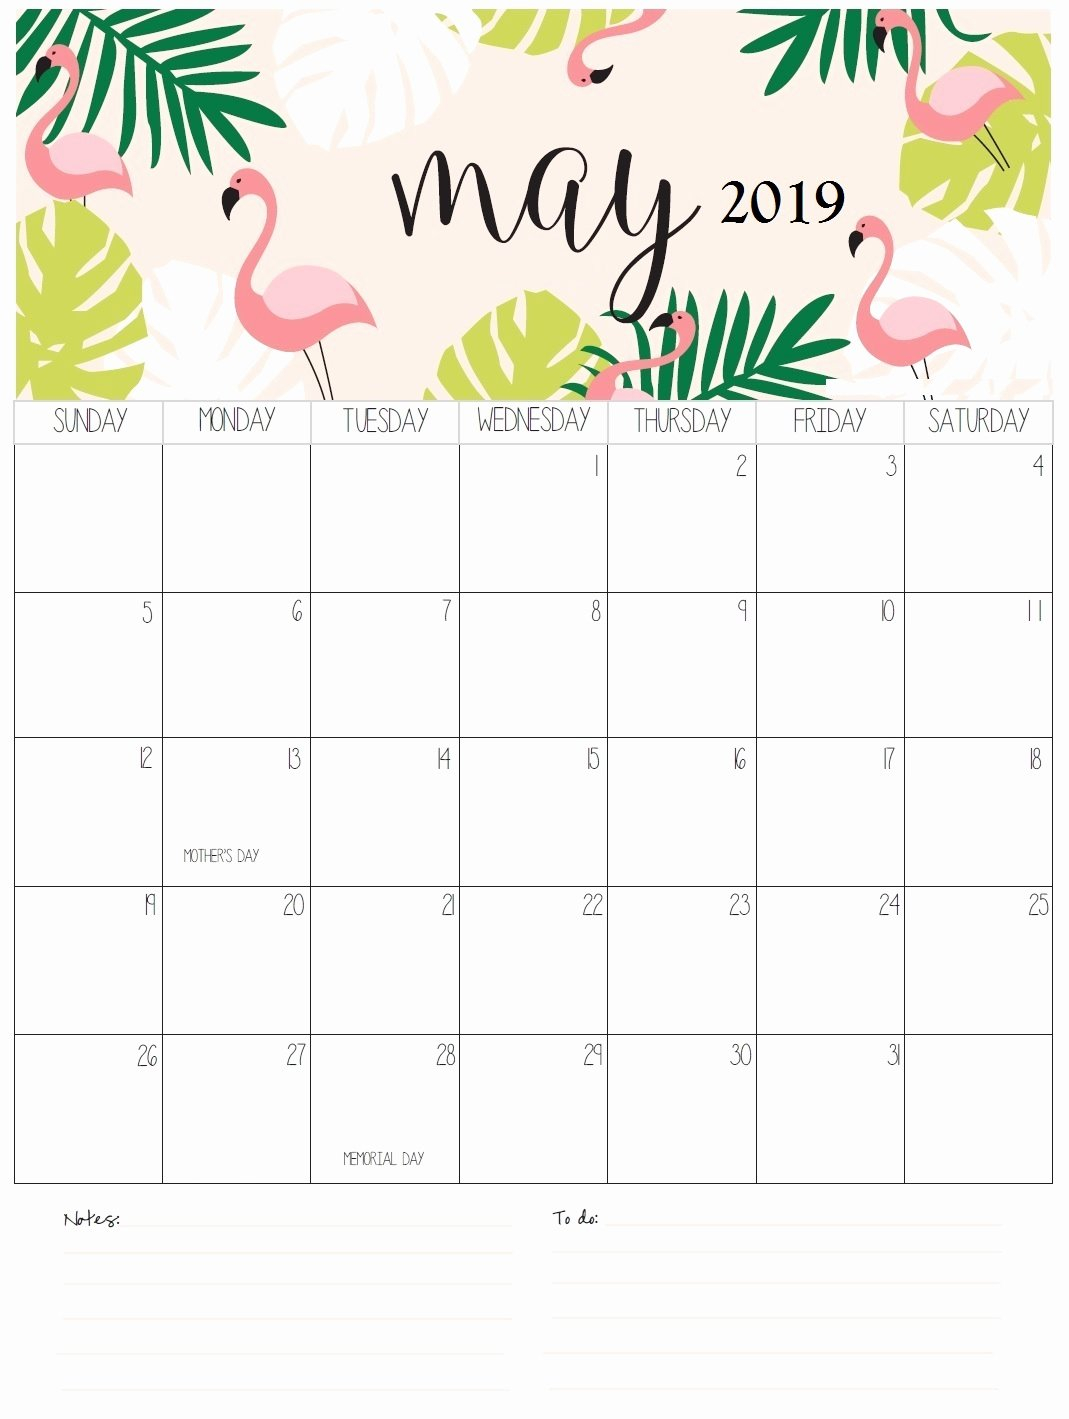 Luxury 35 Design January 2019 Calendar Printable Tumblr | Micheleboy 76Ers Calendar 2019